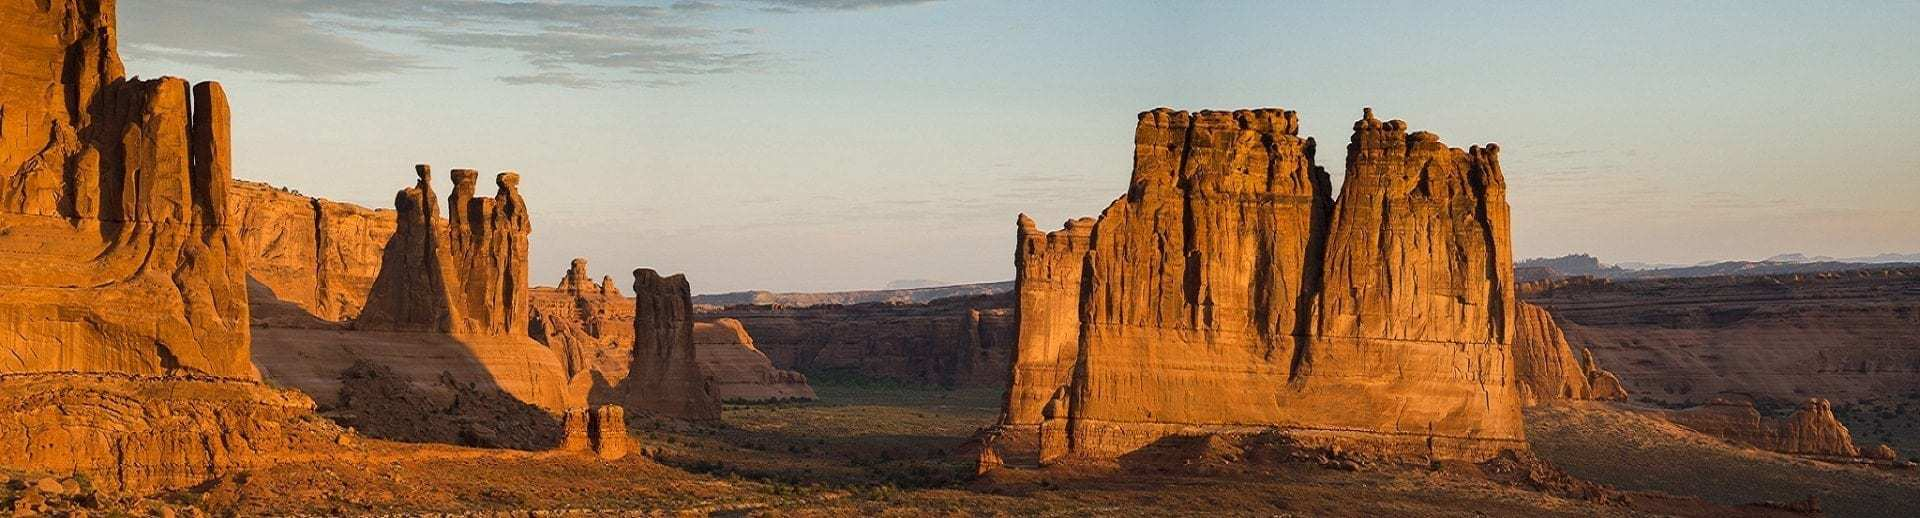 wd 40 monument valley